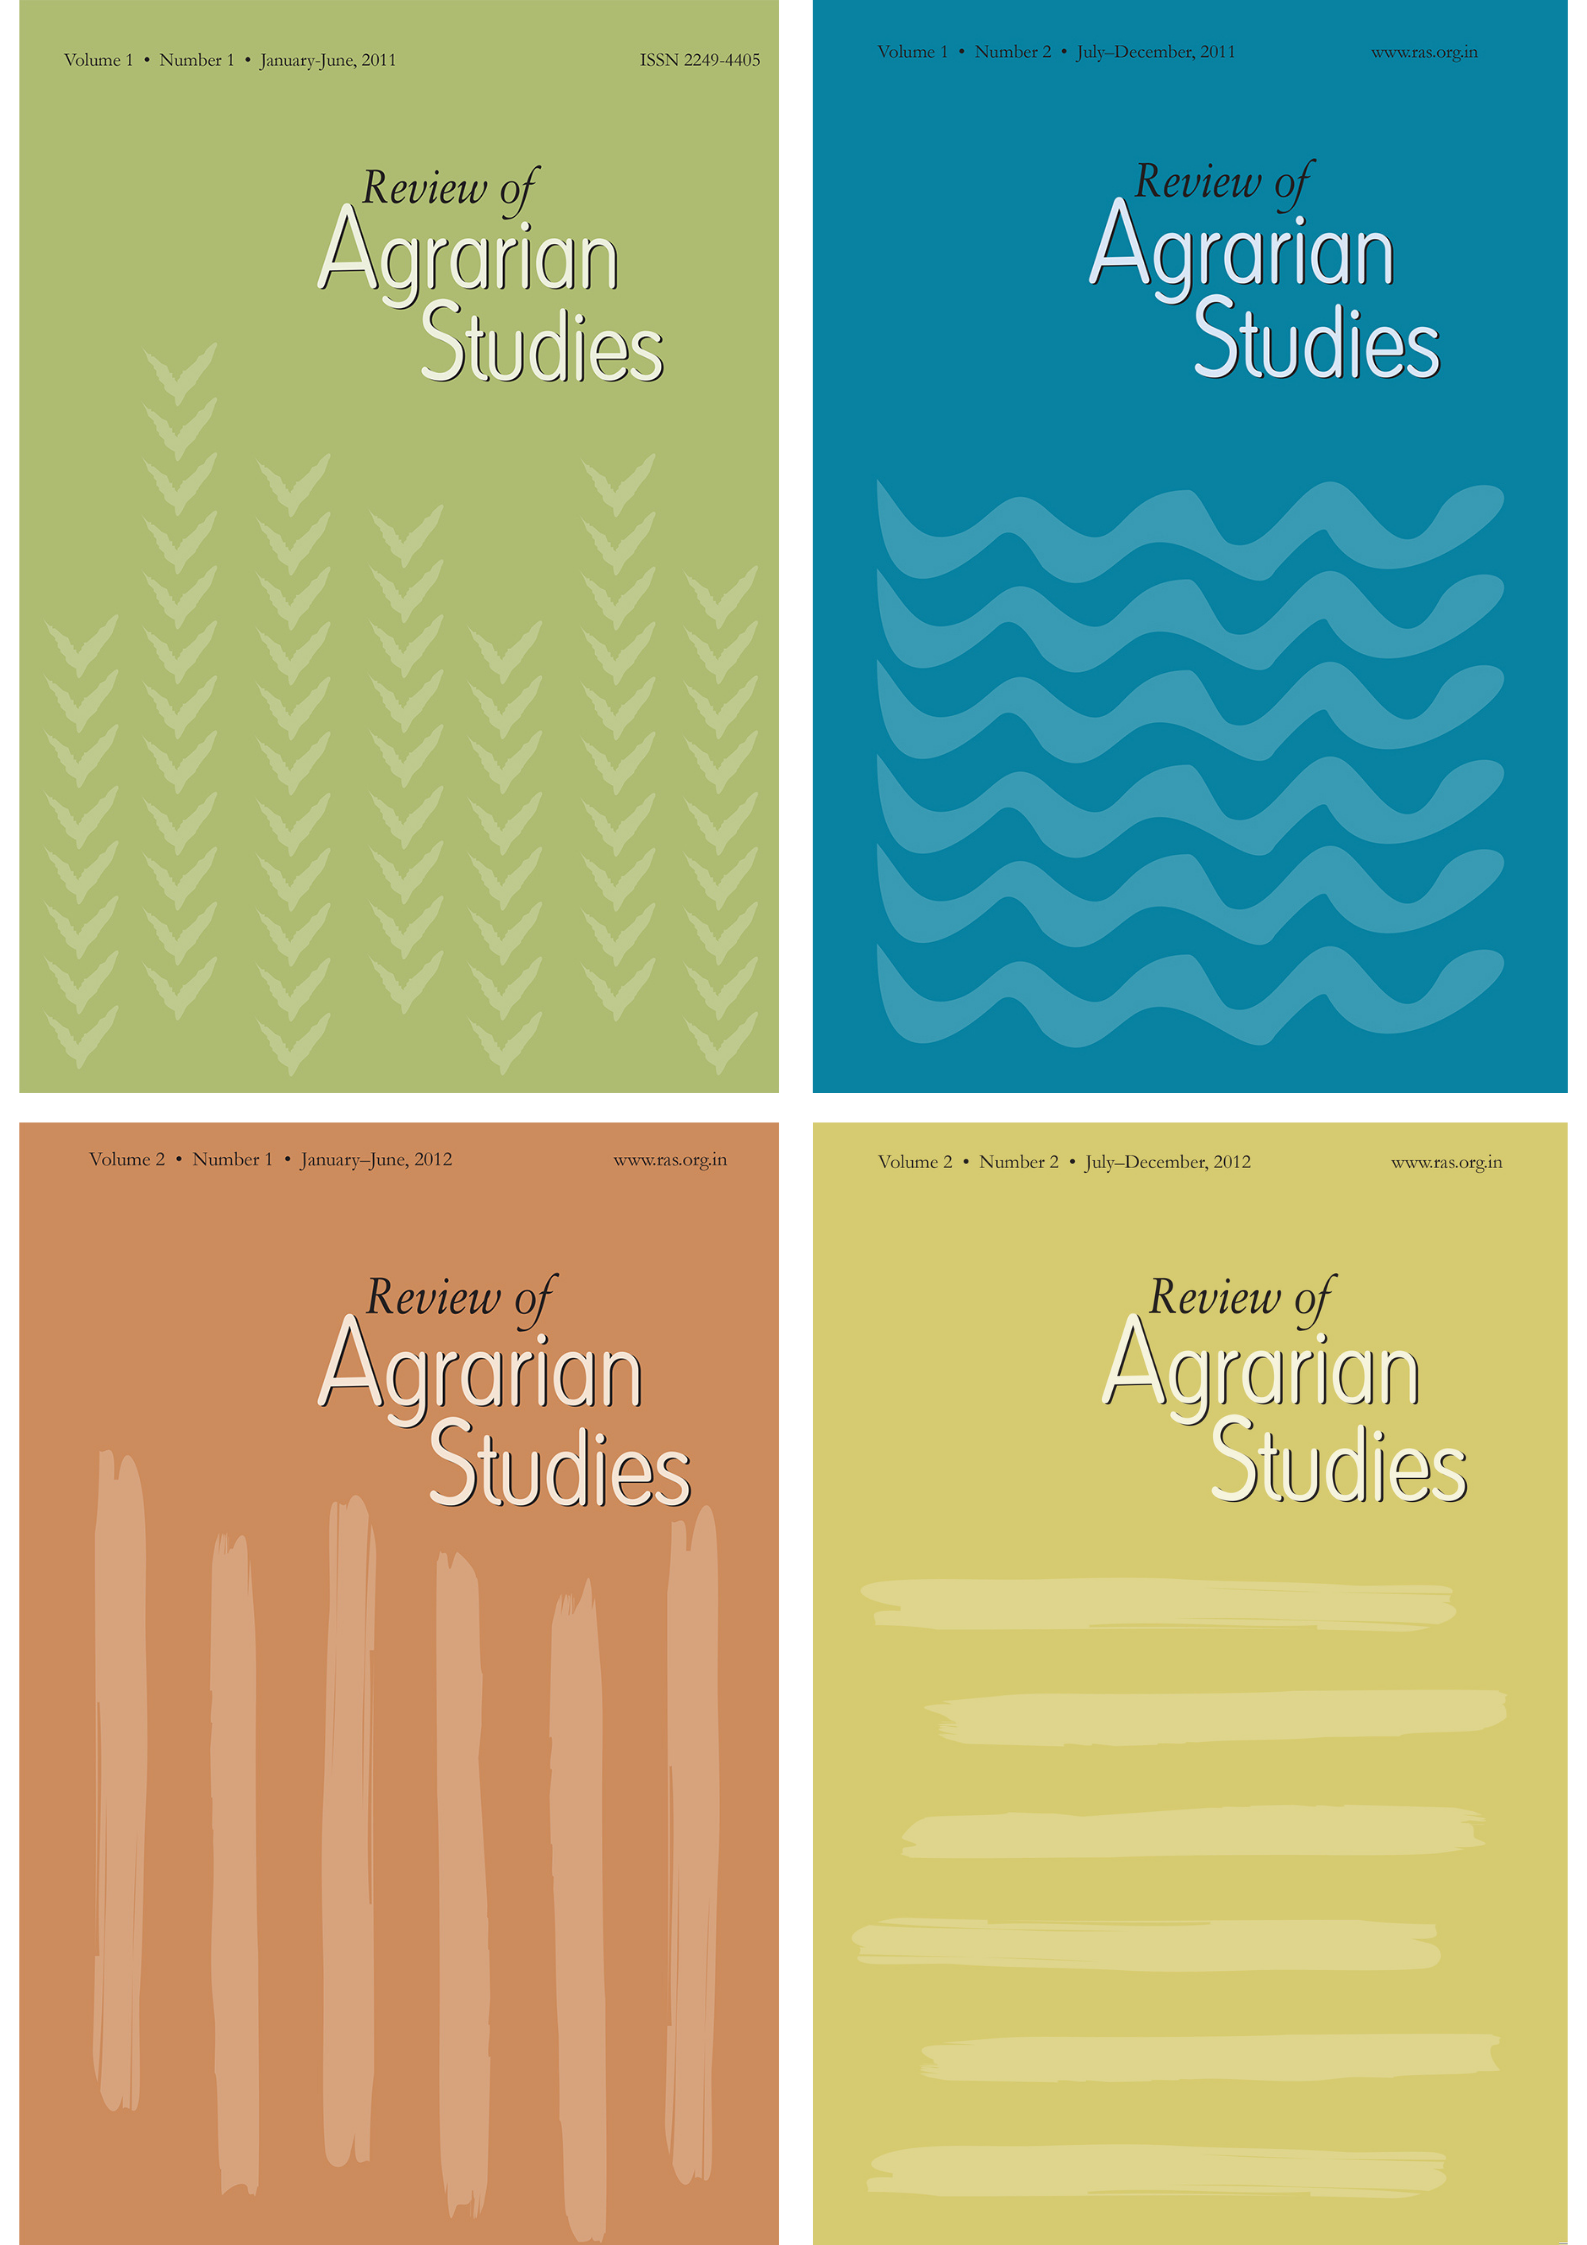 Review of Agrarian Studies sale extended to 15 May...